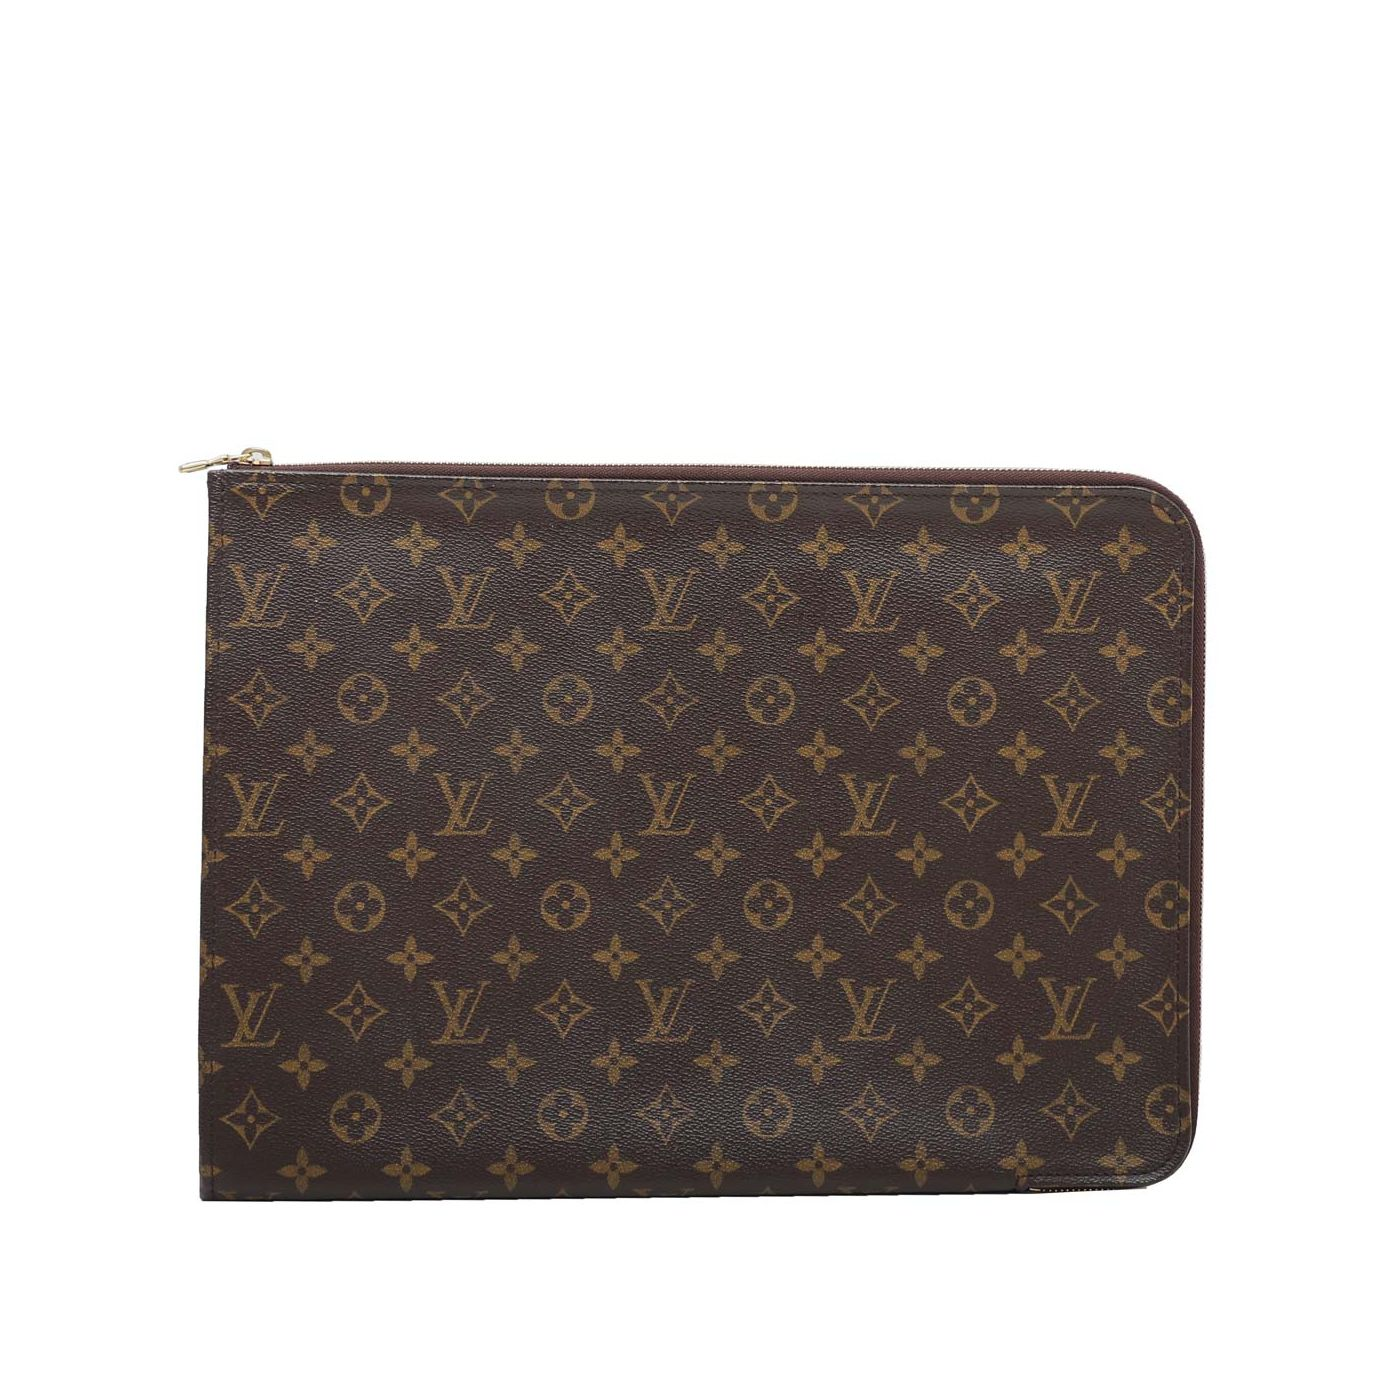 Louis Vuitton Brown Portfolio Poche Documents Case Clutch